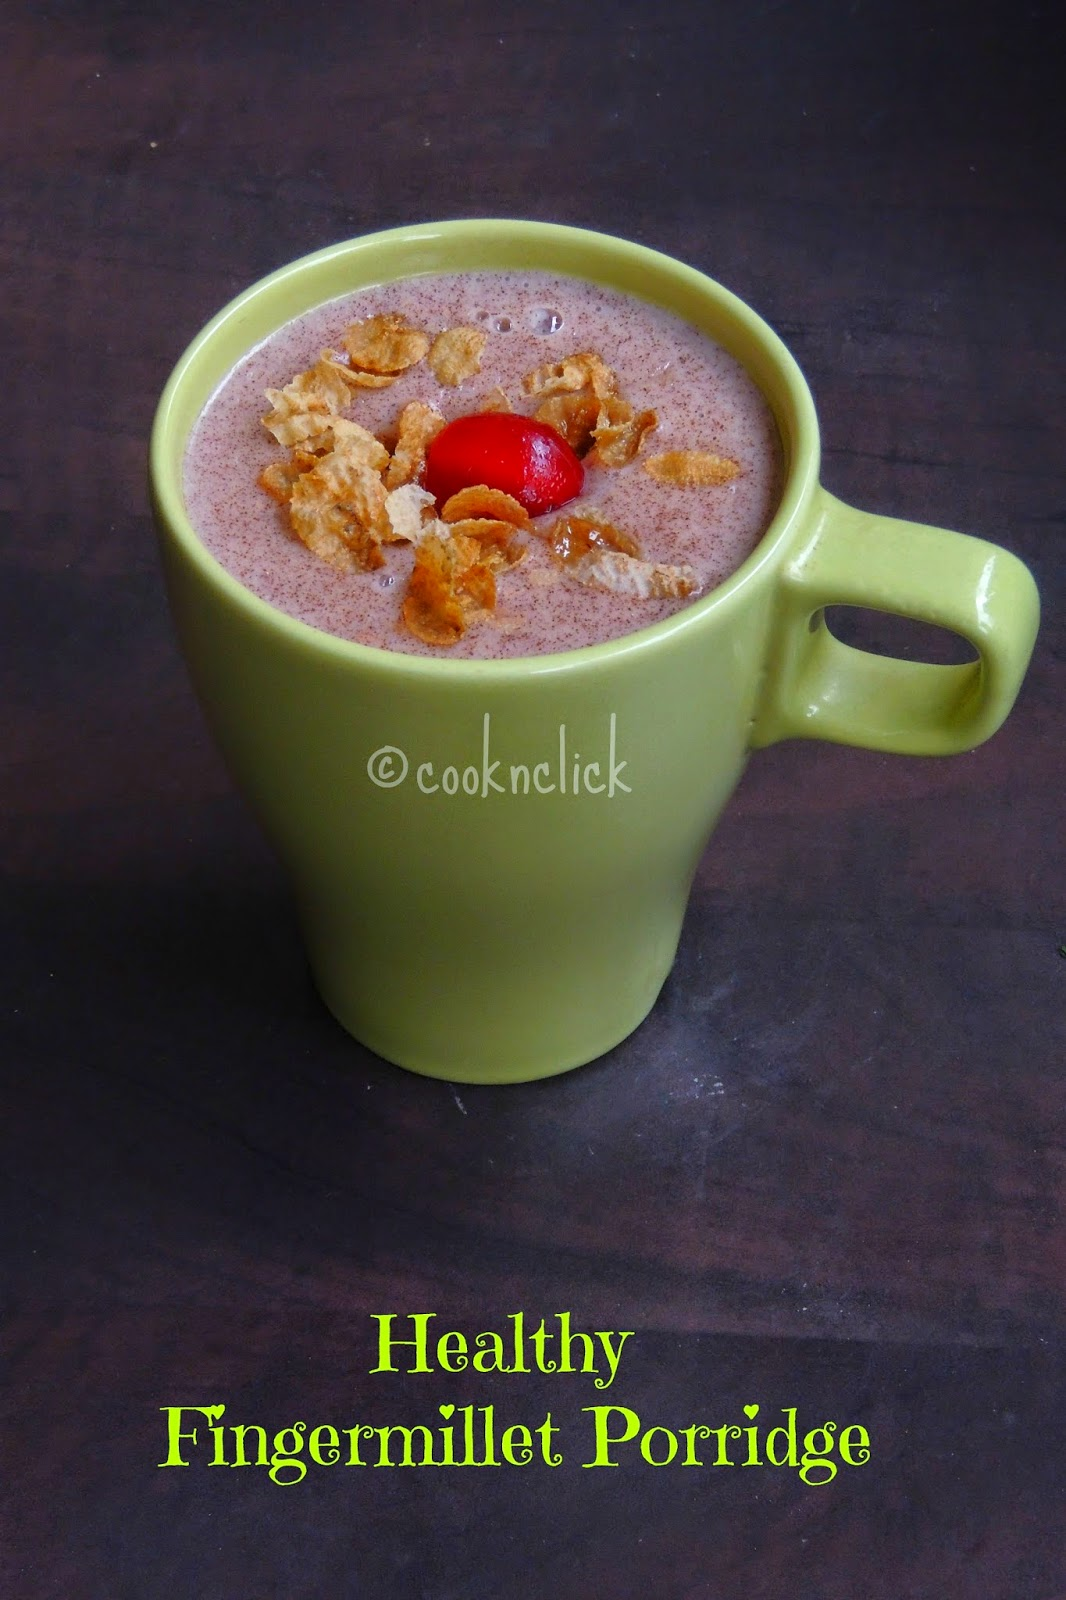 Sprouted ragi porridge, breakfast ragi porridge,Healthy fingermillet porridge, ragi malt